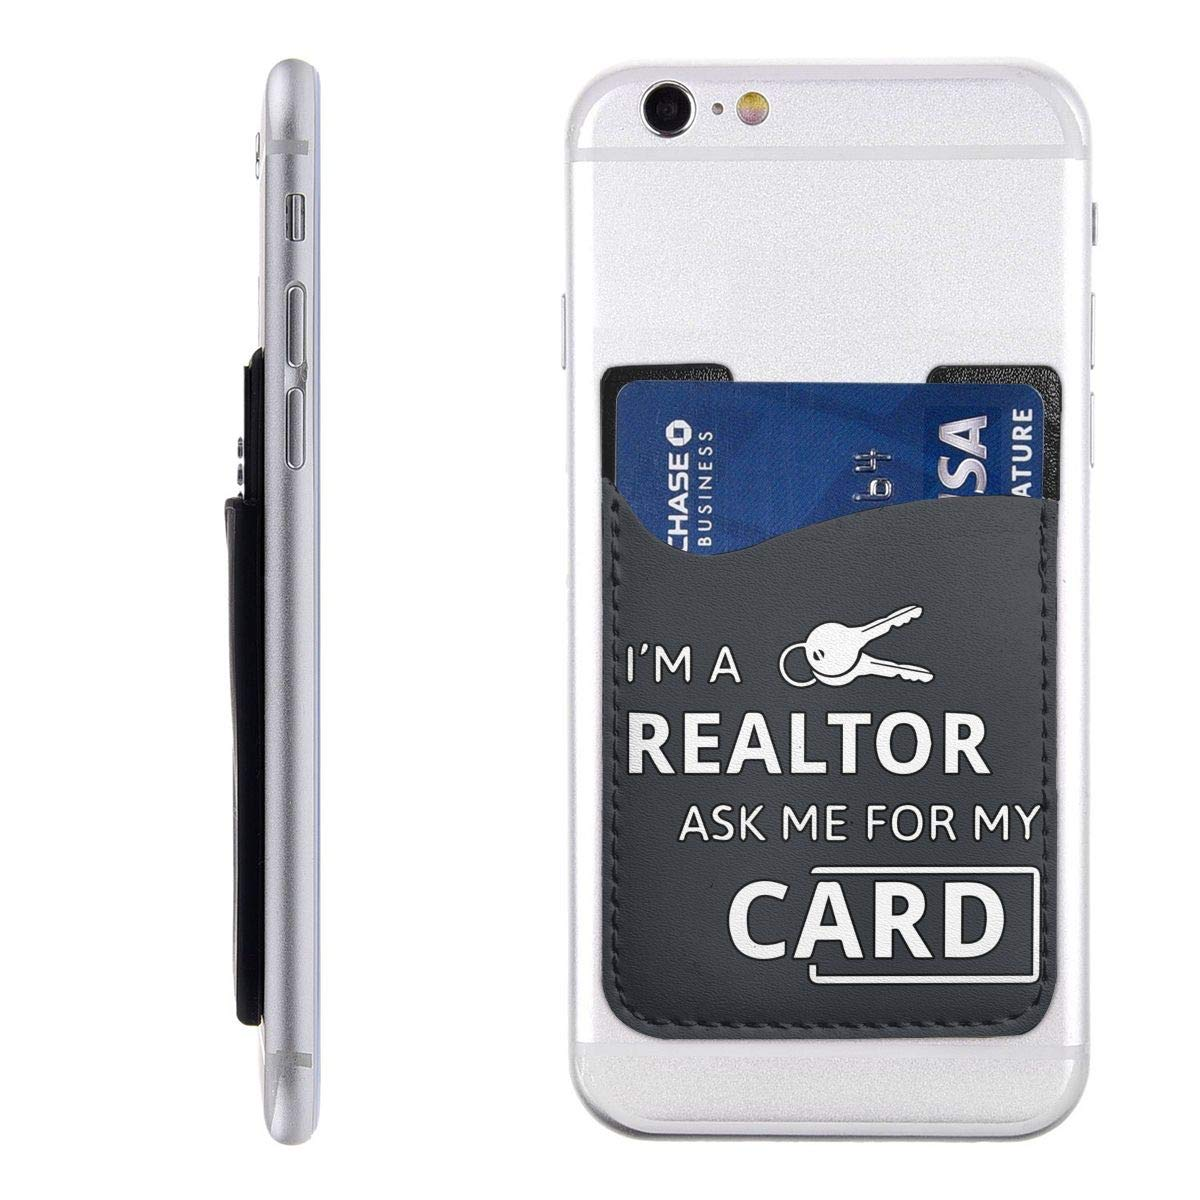 Real Estate Realtor I'm A Realtor Ask Me Cell Phone Pockets Pouch Card Holder Wallet for Back of Phone Ultra-Slim 3M Stick On Phone by XinXin Card Package